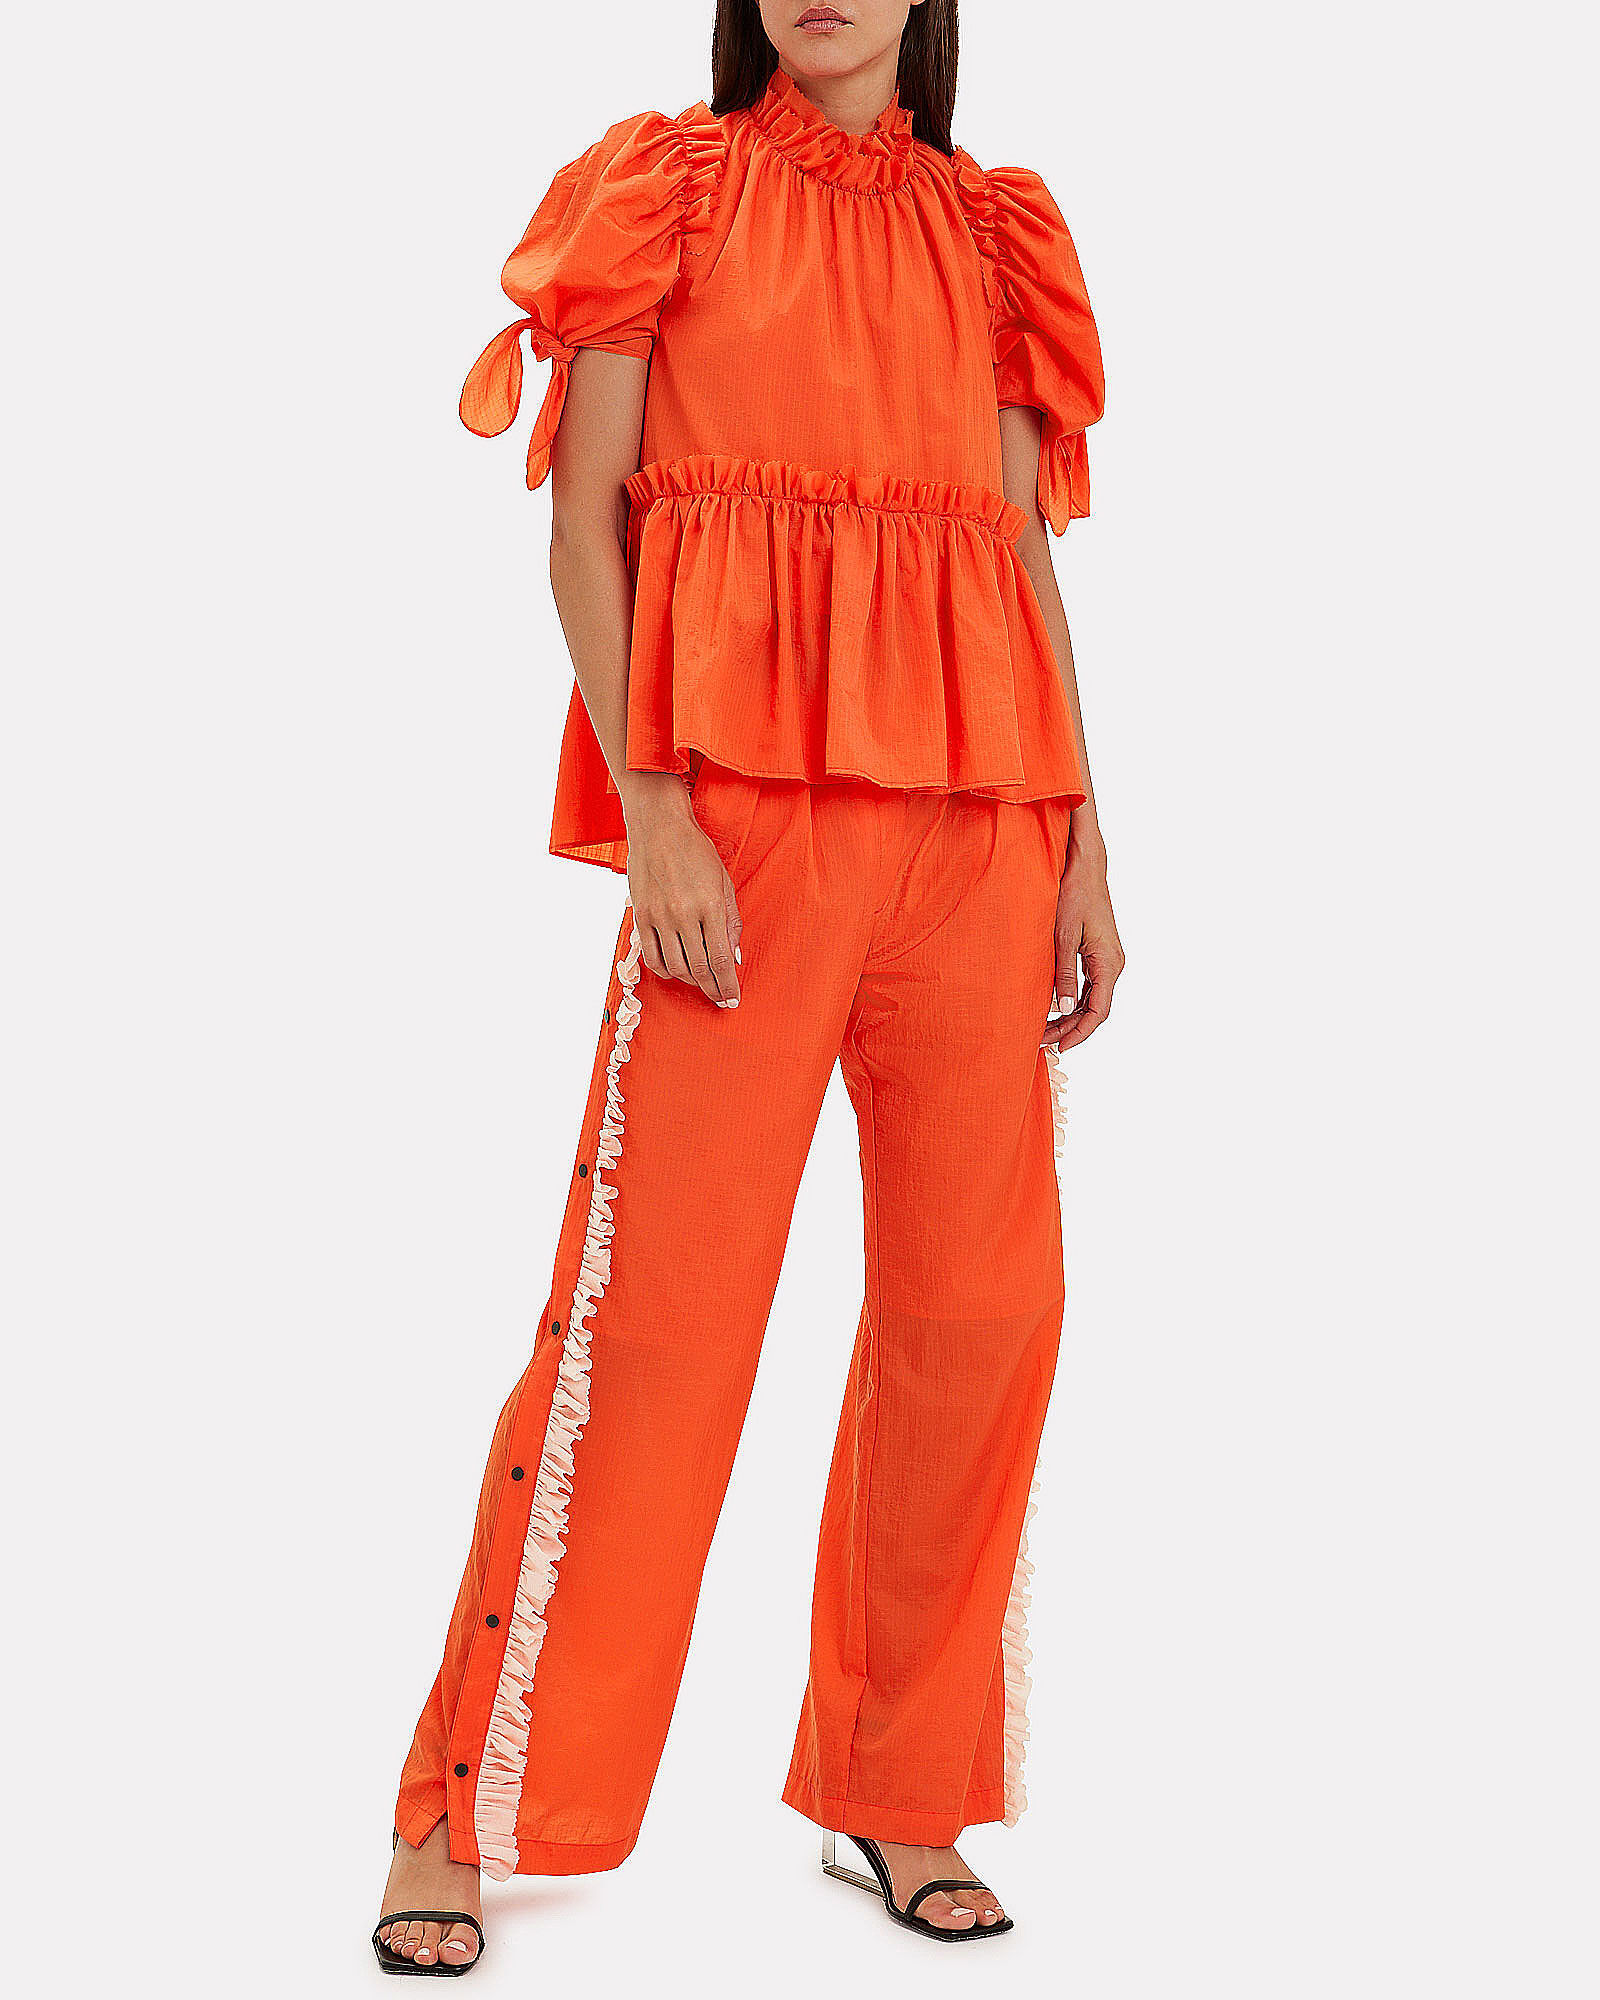 Orla Ruffled Trousers, ORANGE, hi-res